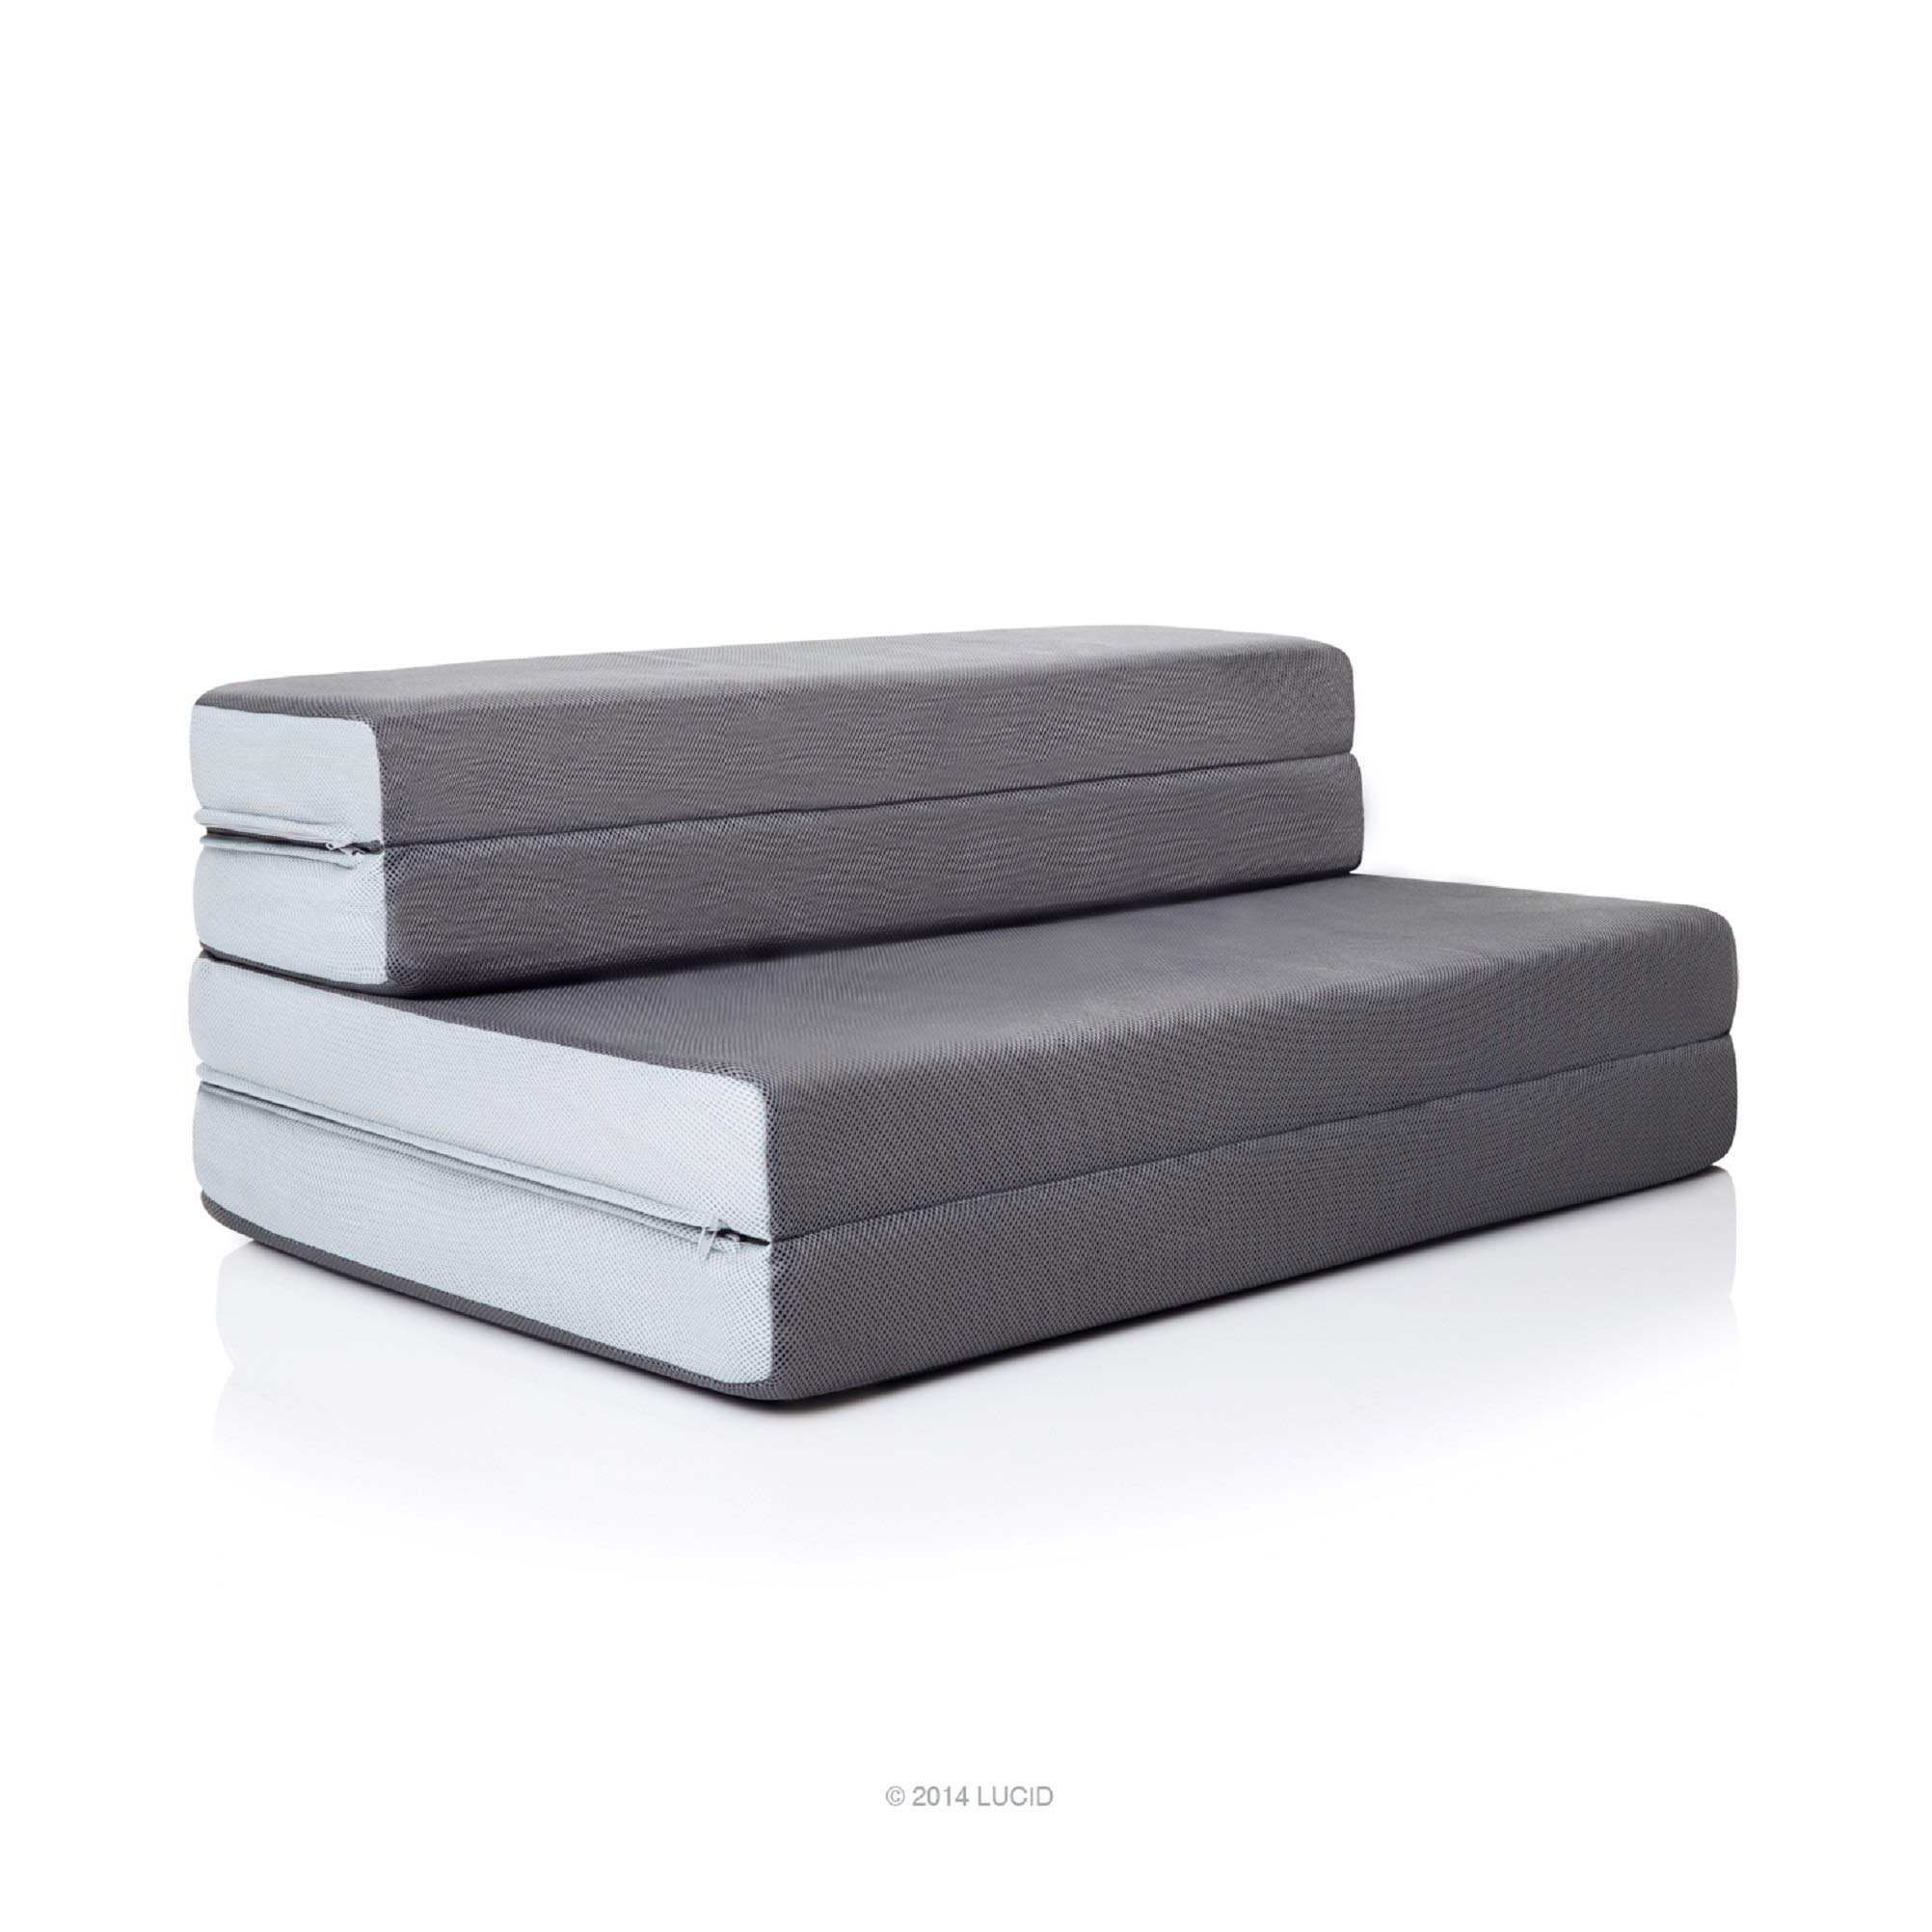 LUCID 4 Inch Folding Sofa and Play Mat - Comfortable and Durable Foam - Washable Cover - Queen